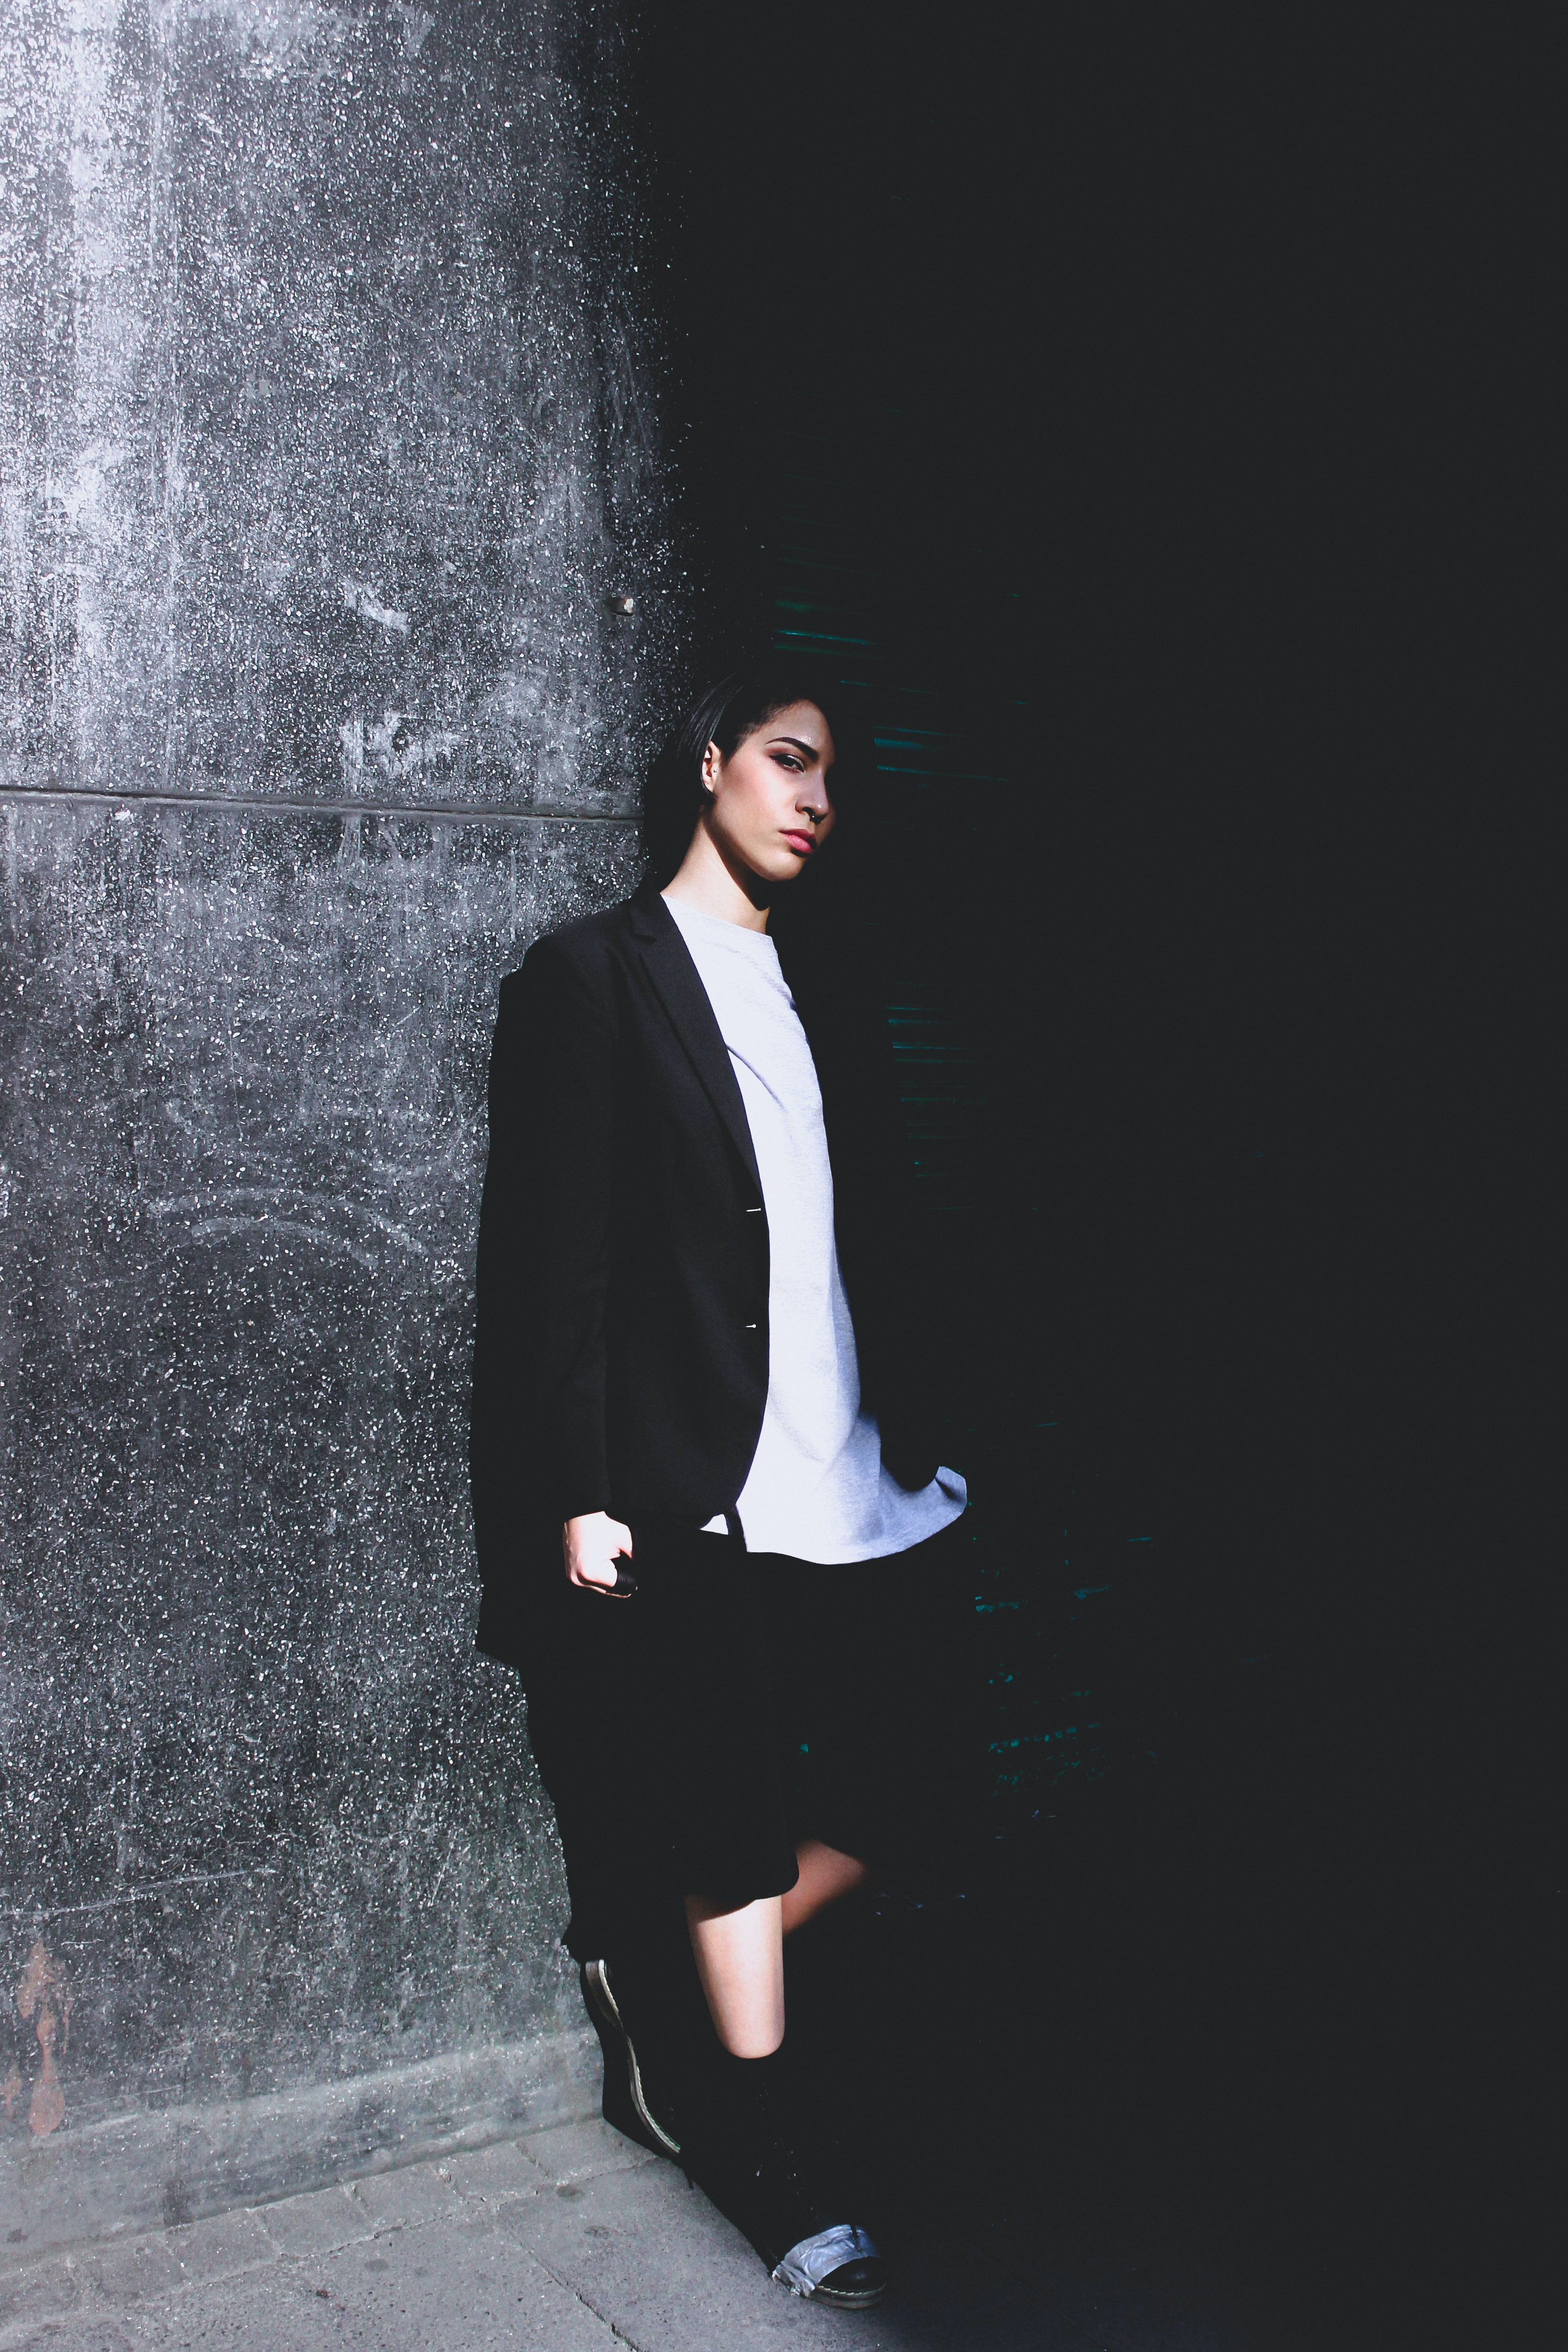 Person in business casual clothes leaning against a wall in partial shadow